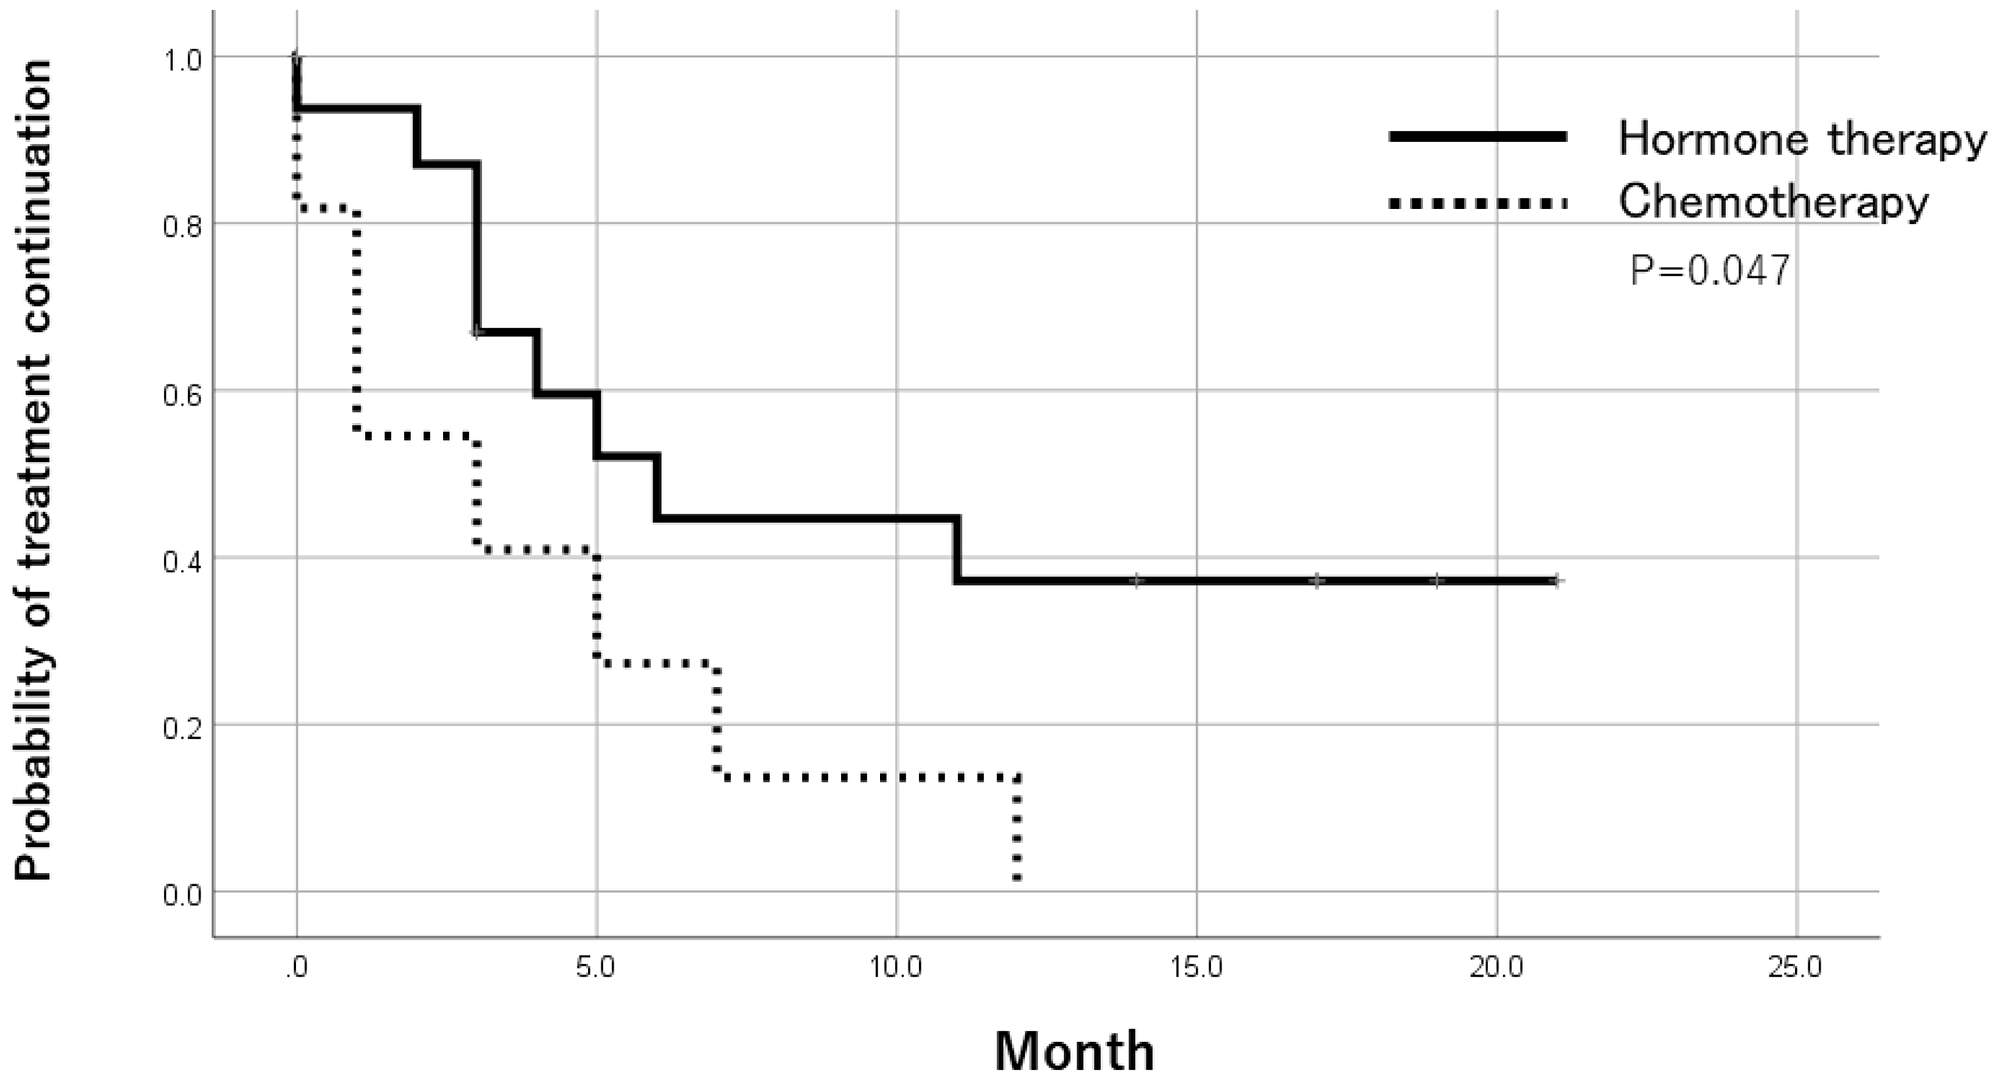 Time to treatment failure after trial registration by treatments in ER-positive patients.